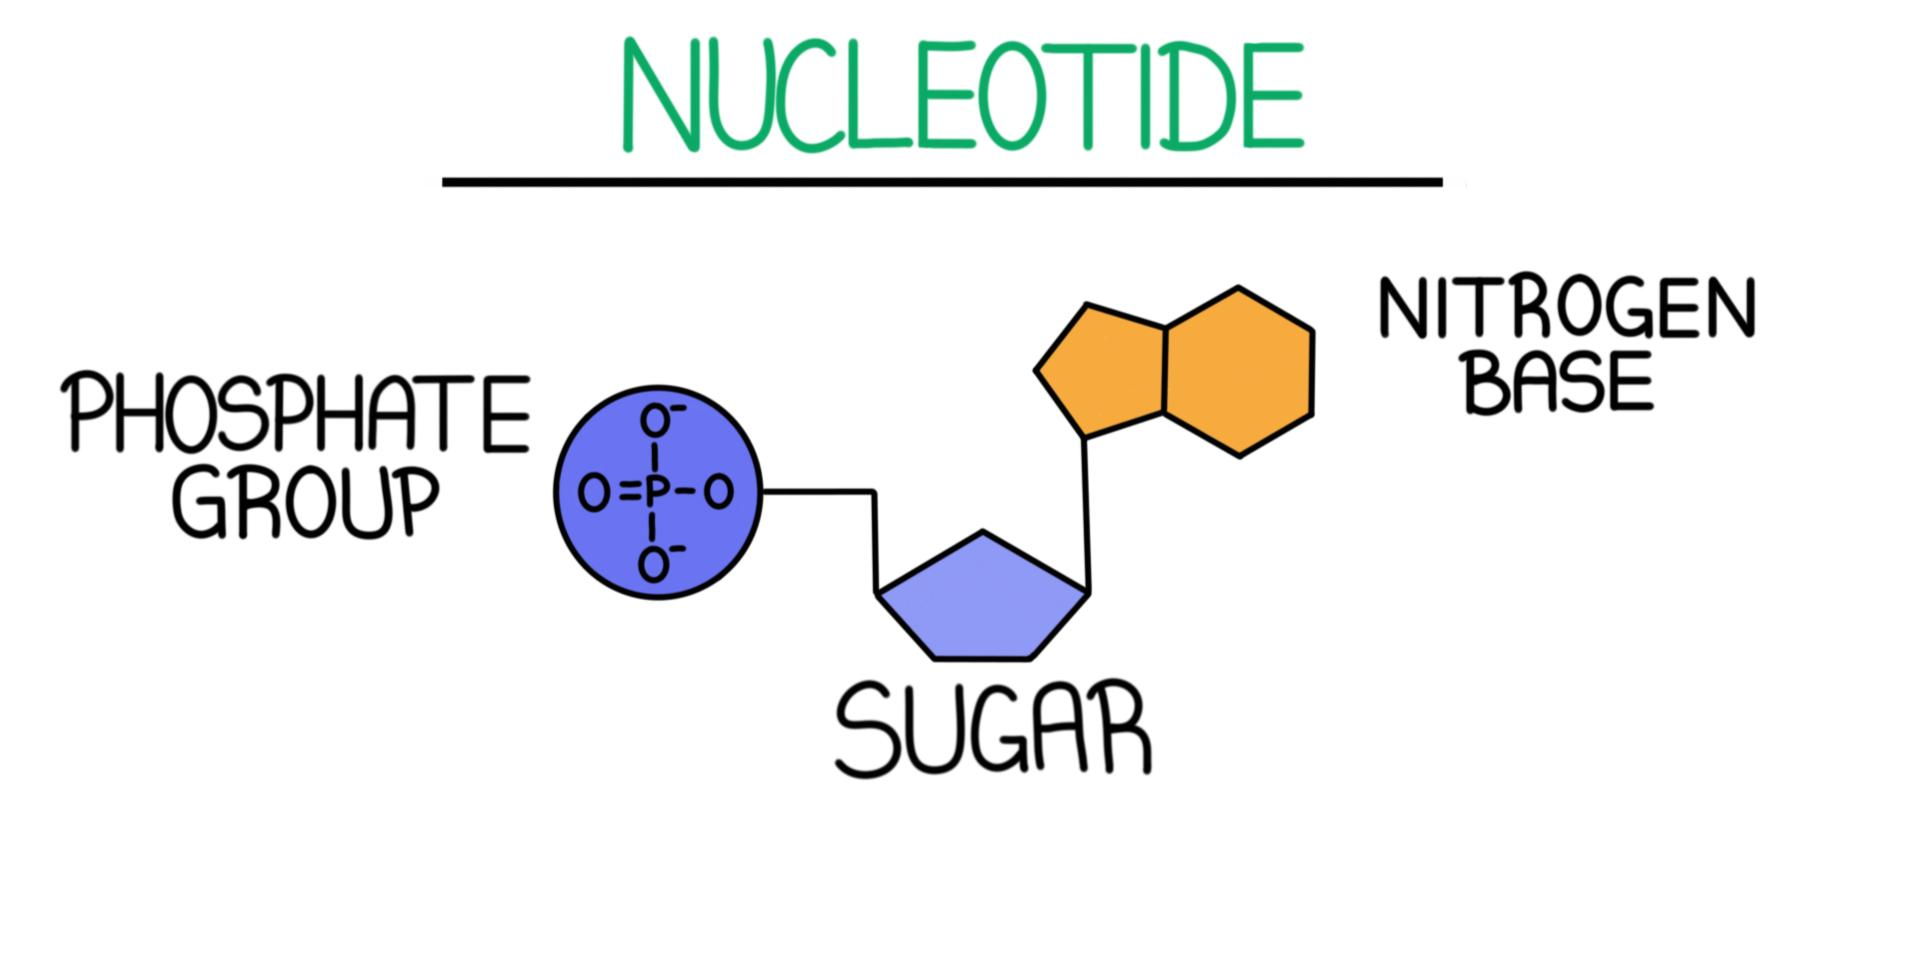 hight resolution of a diagram of a nucleotide it consists of a phosphate group sugar and